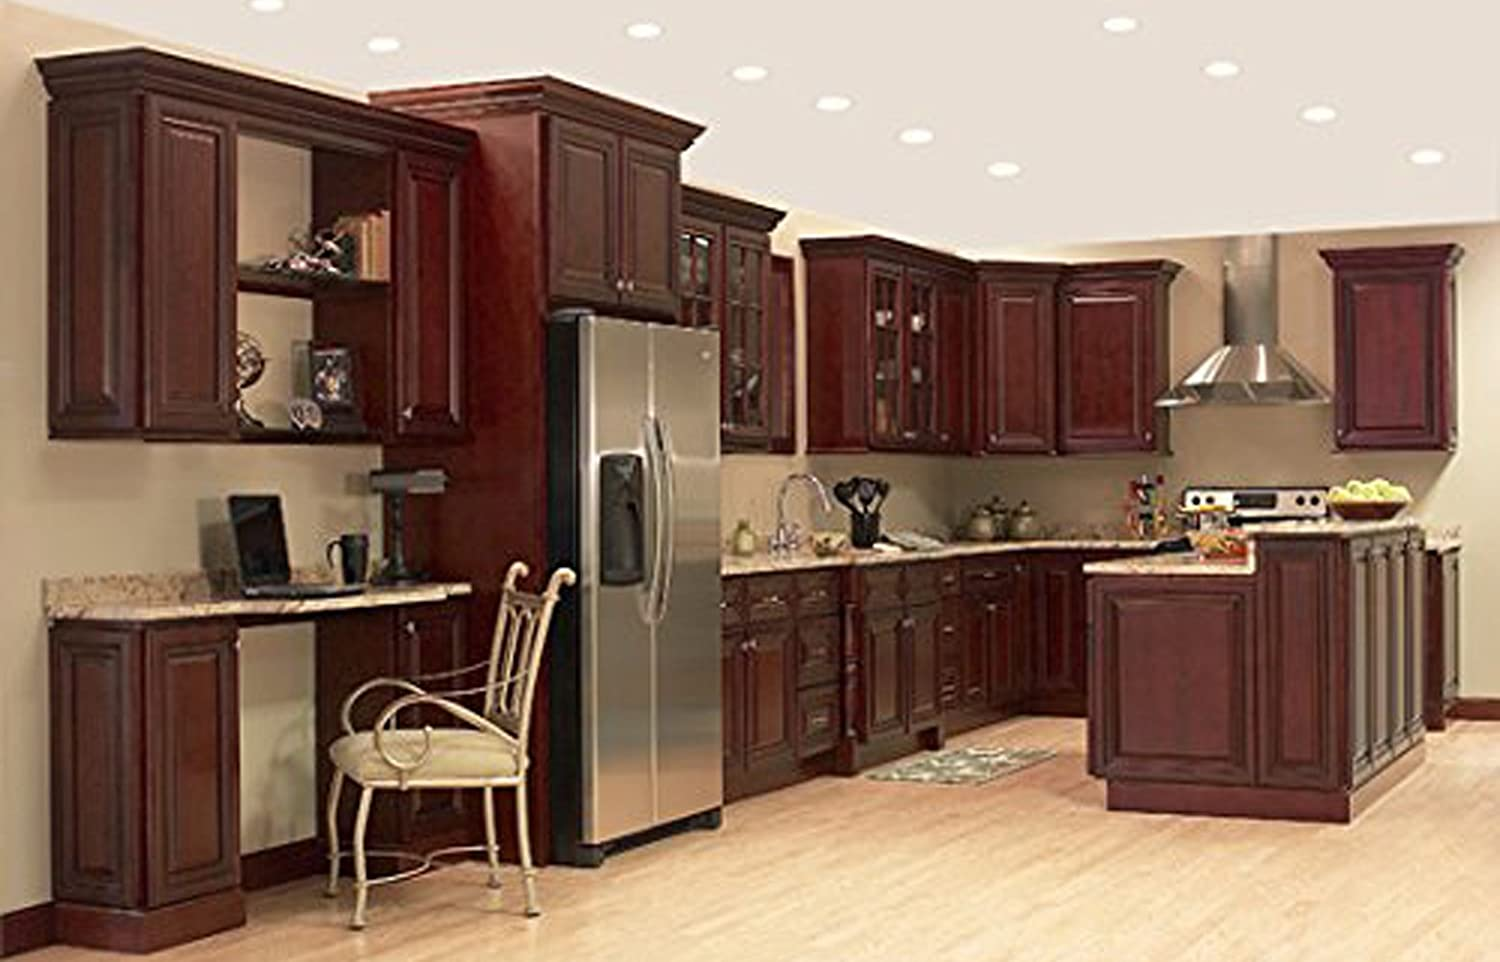 Amazoncom Georgetown Collection Jsi X Kitchen Cabinets - Rta kitchen cabinets reviews